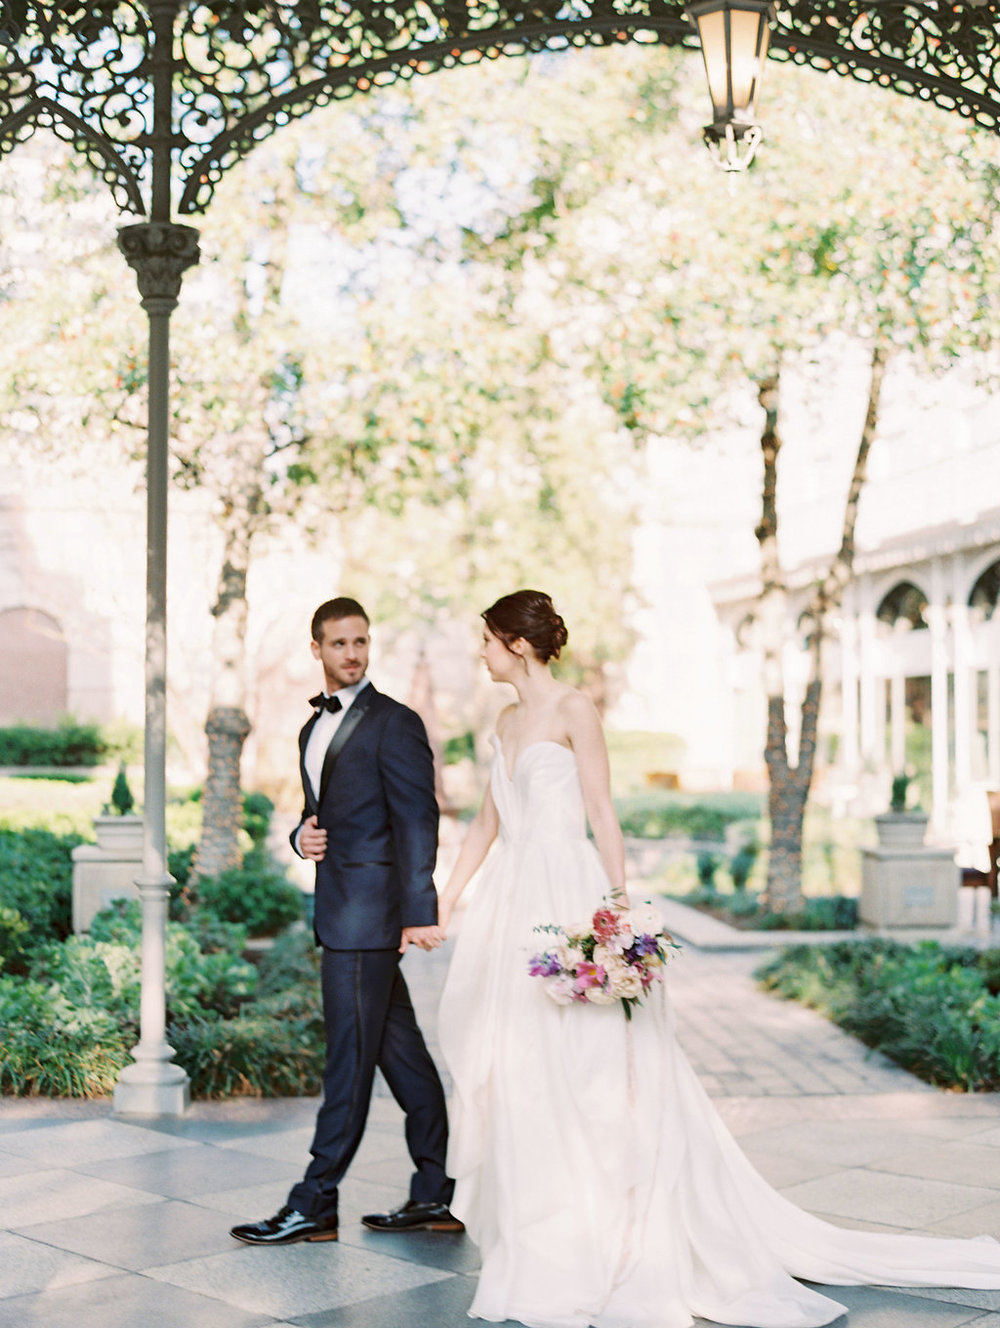 Carol Hannah Bridal Senara Gown Hotel-Crescent-Dallas-Wedding-Editorial-240.jpg